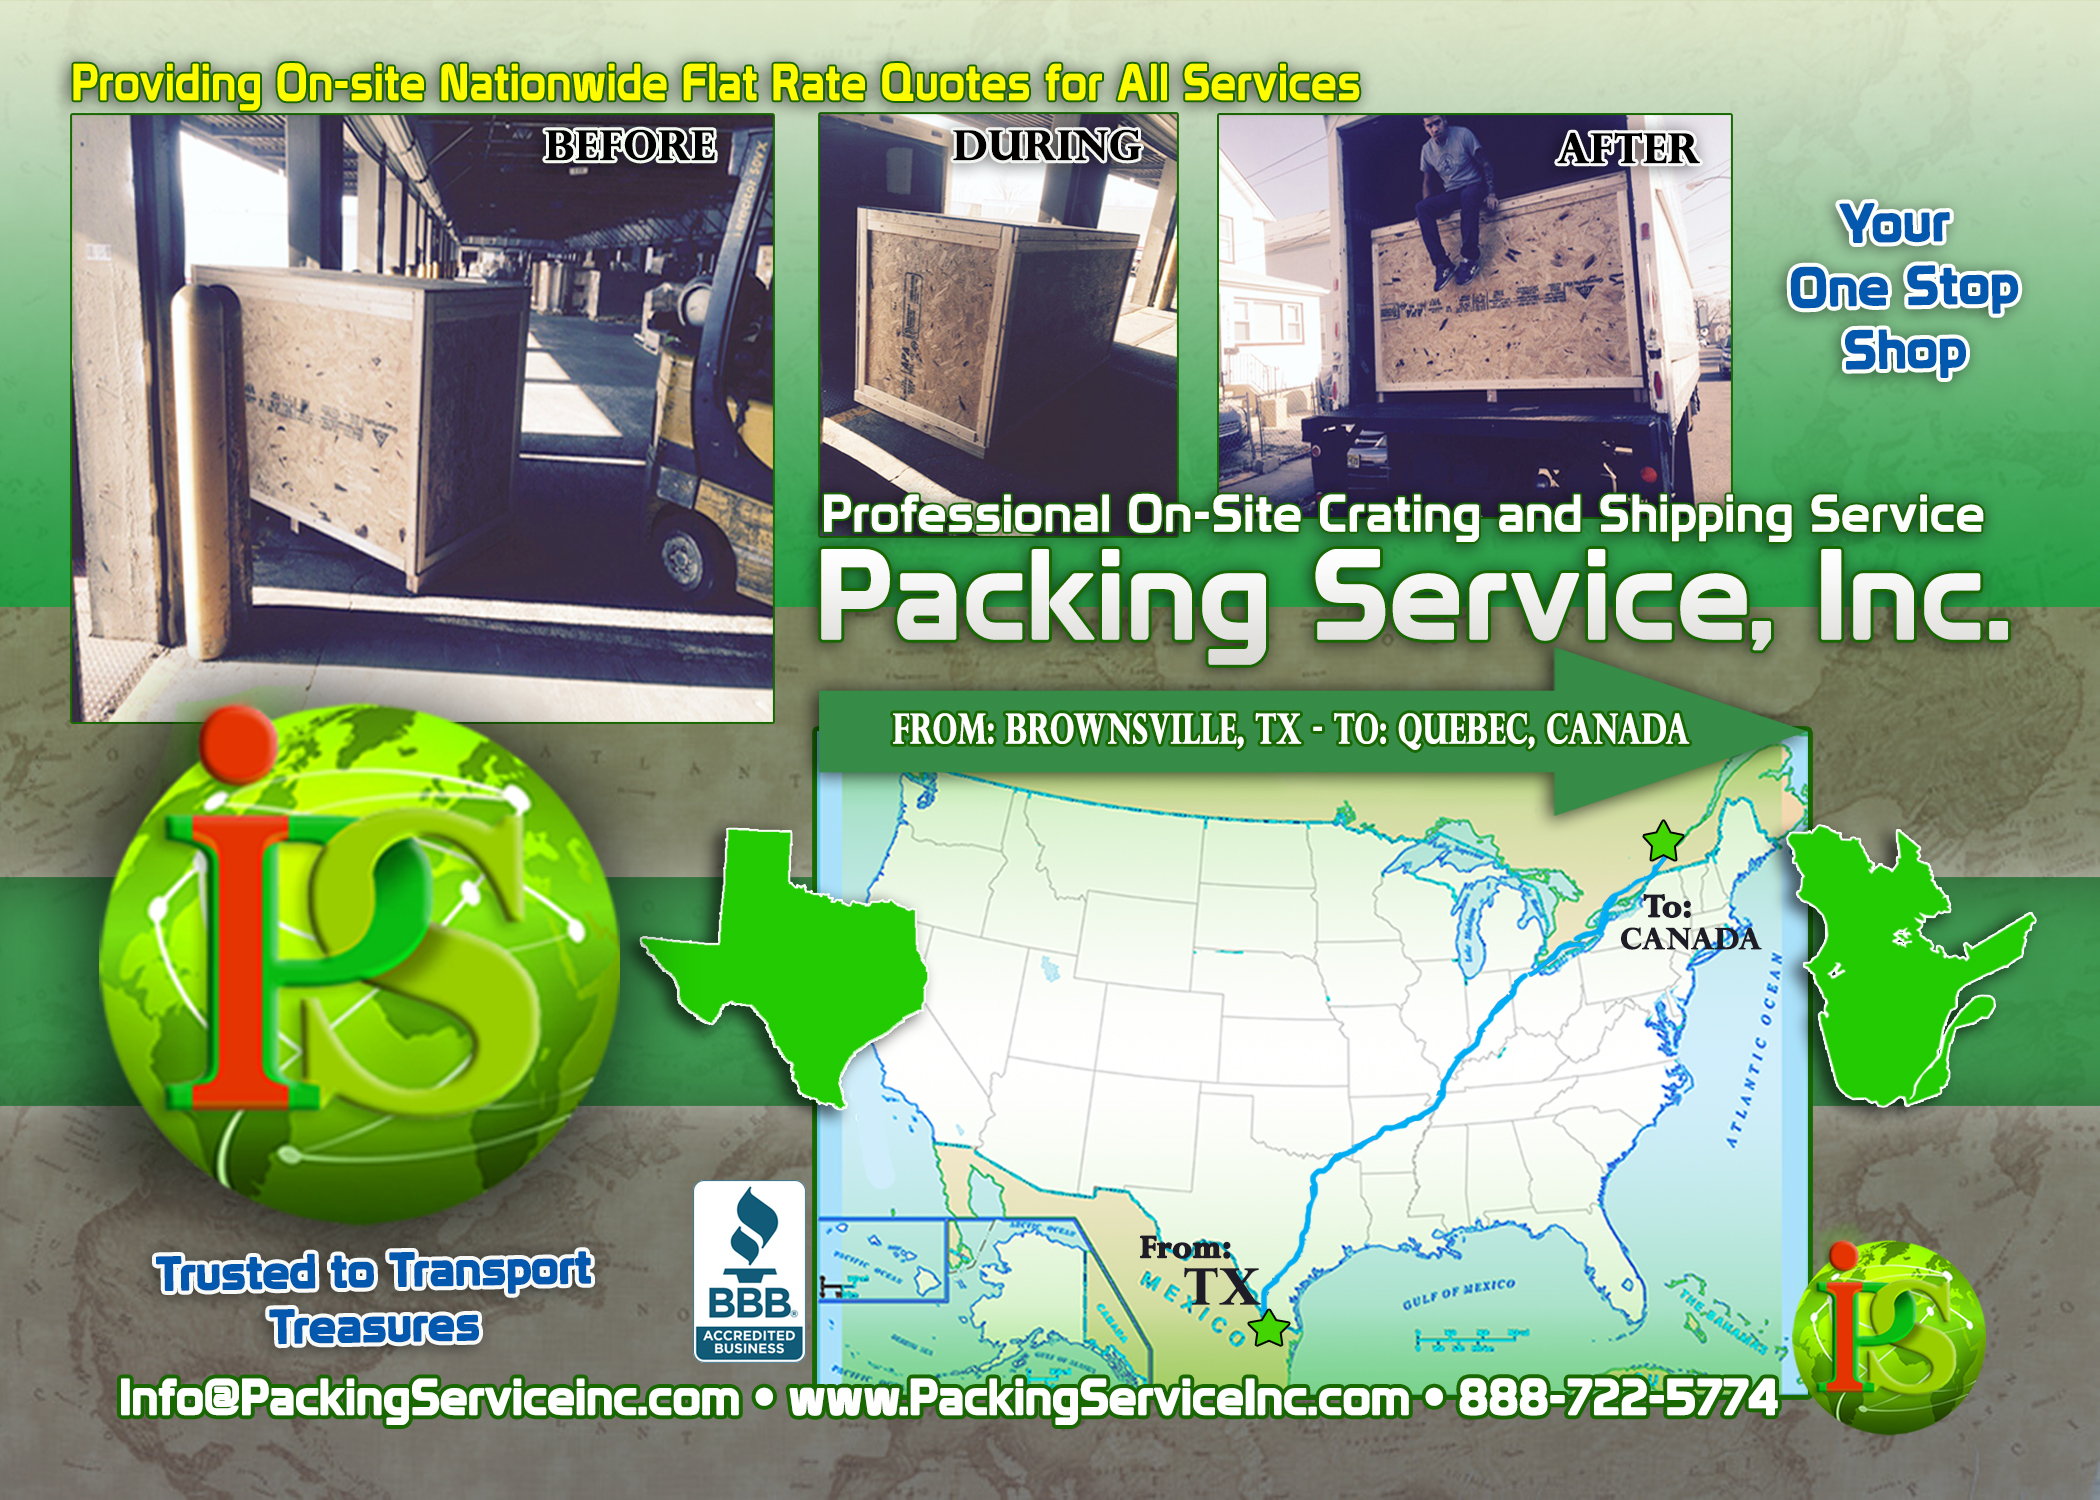 Custom wooden Crates and Shipping Services TX-CANADA with Packing Service, Inc. B